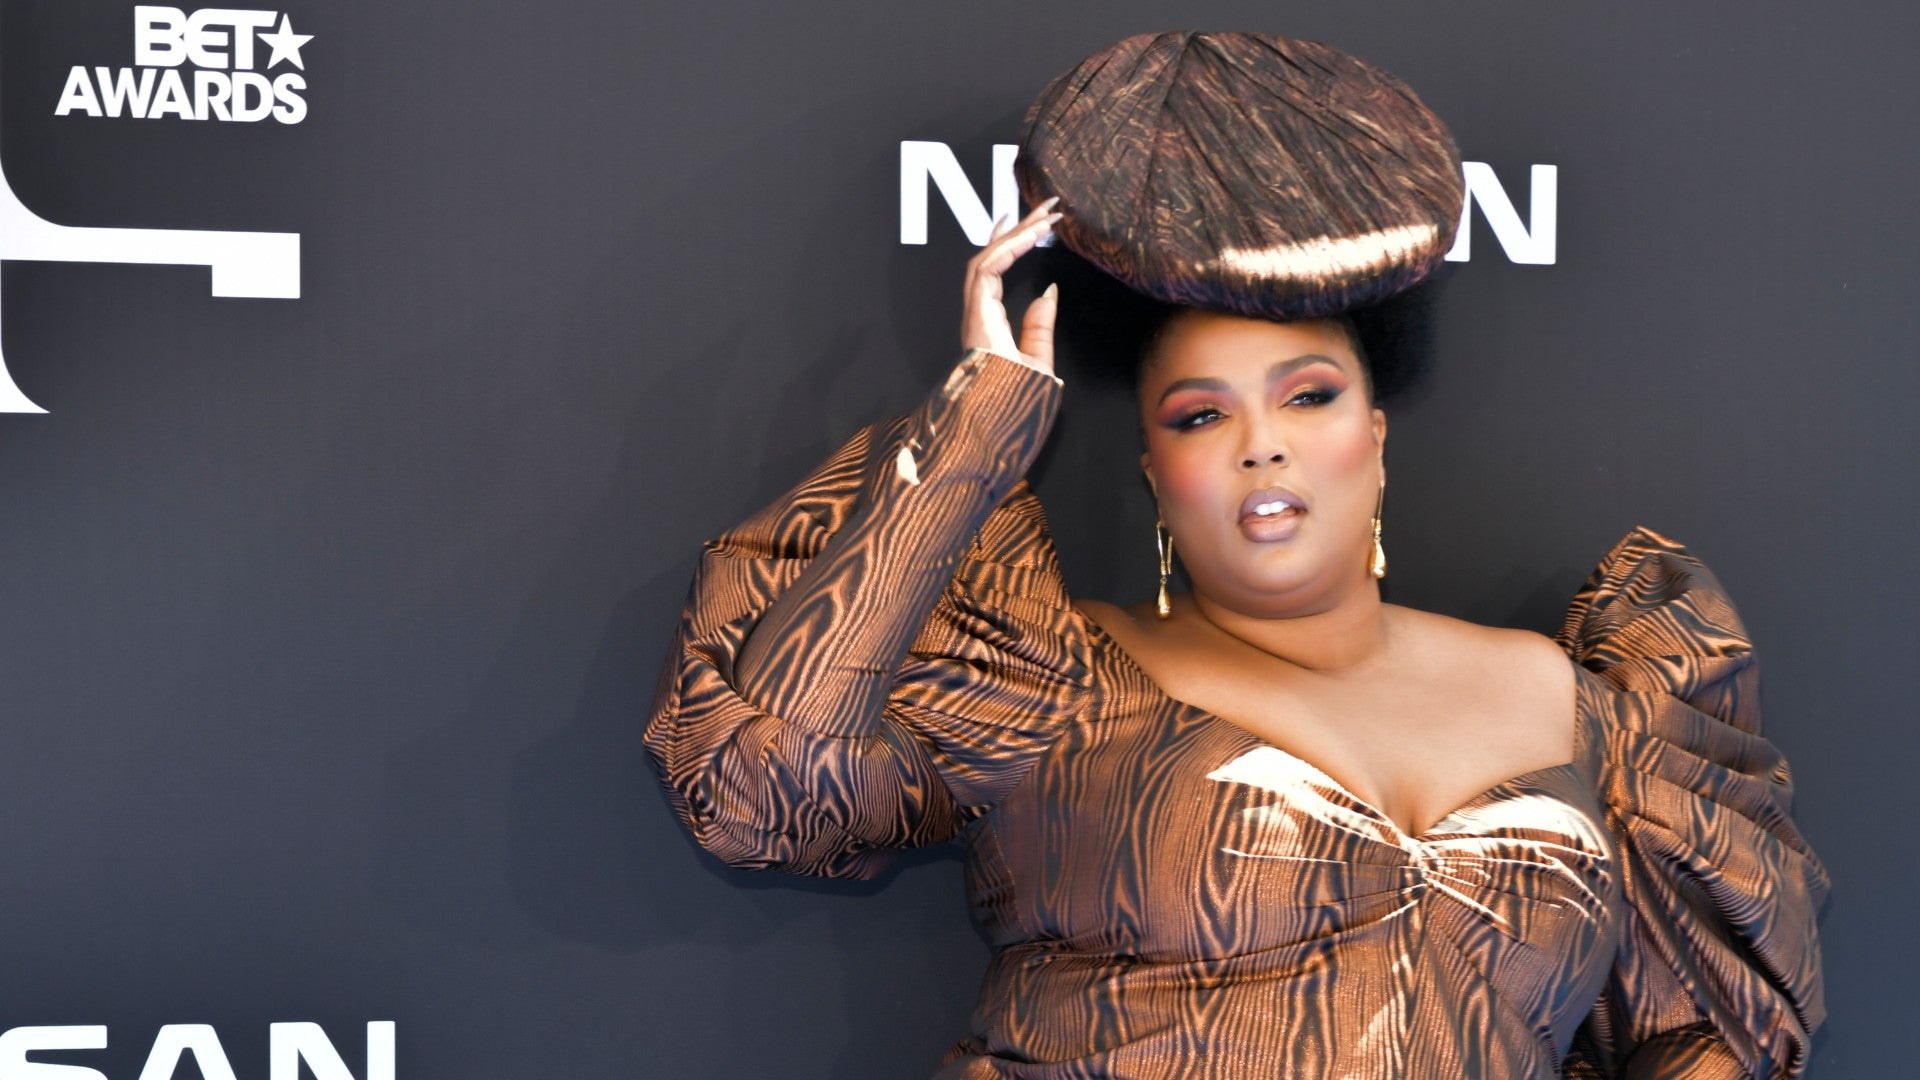 Lizzo Opted For Wood Grain And Natural Hair For Her BET Awards Look